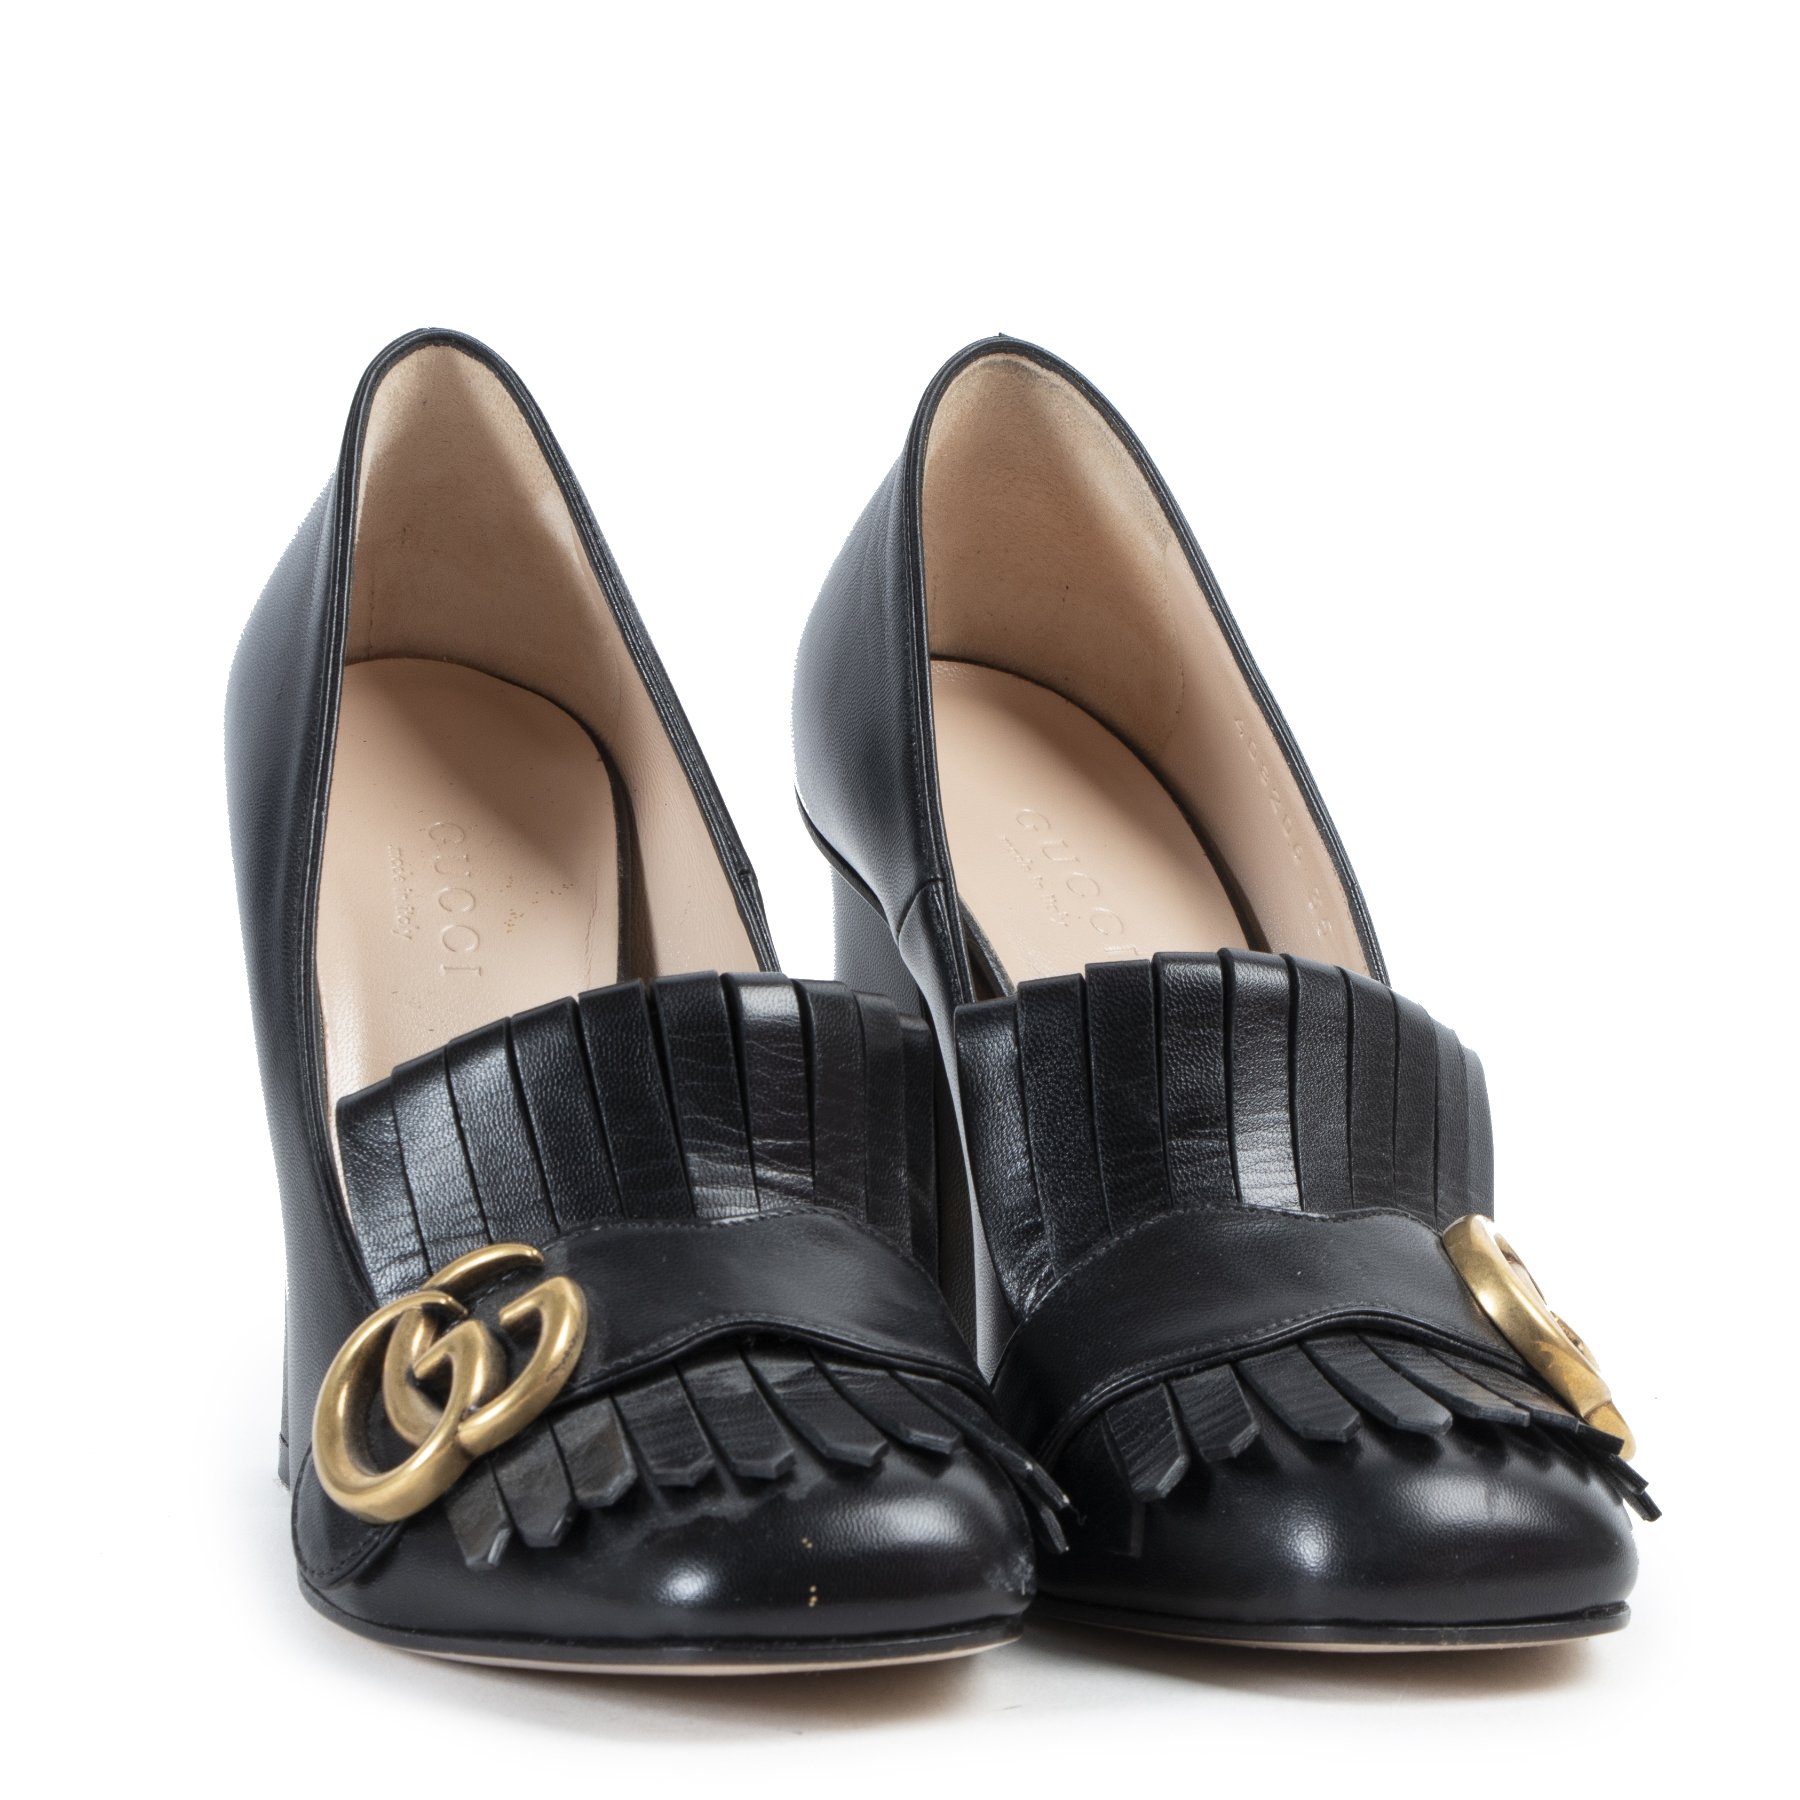 Gucci Marmont Black Leather Pumps - size 35